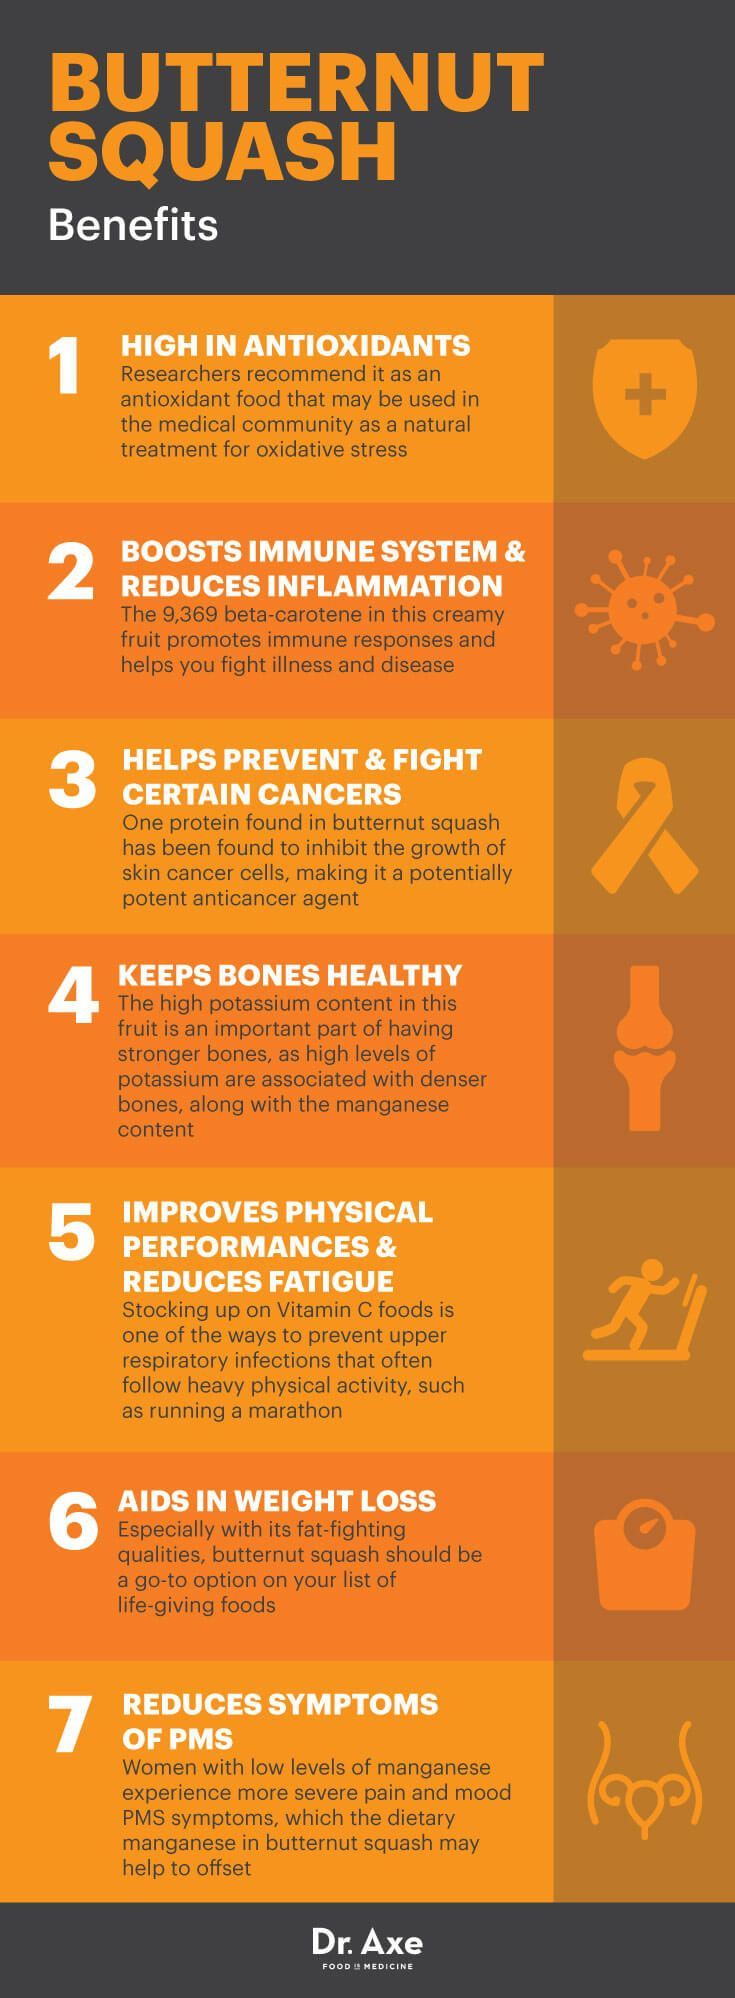 Butternut squash benefits - Dr. Axe  http://www.draxe.com #health #holistic #natural